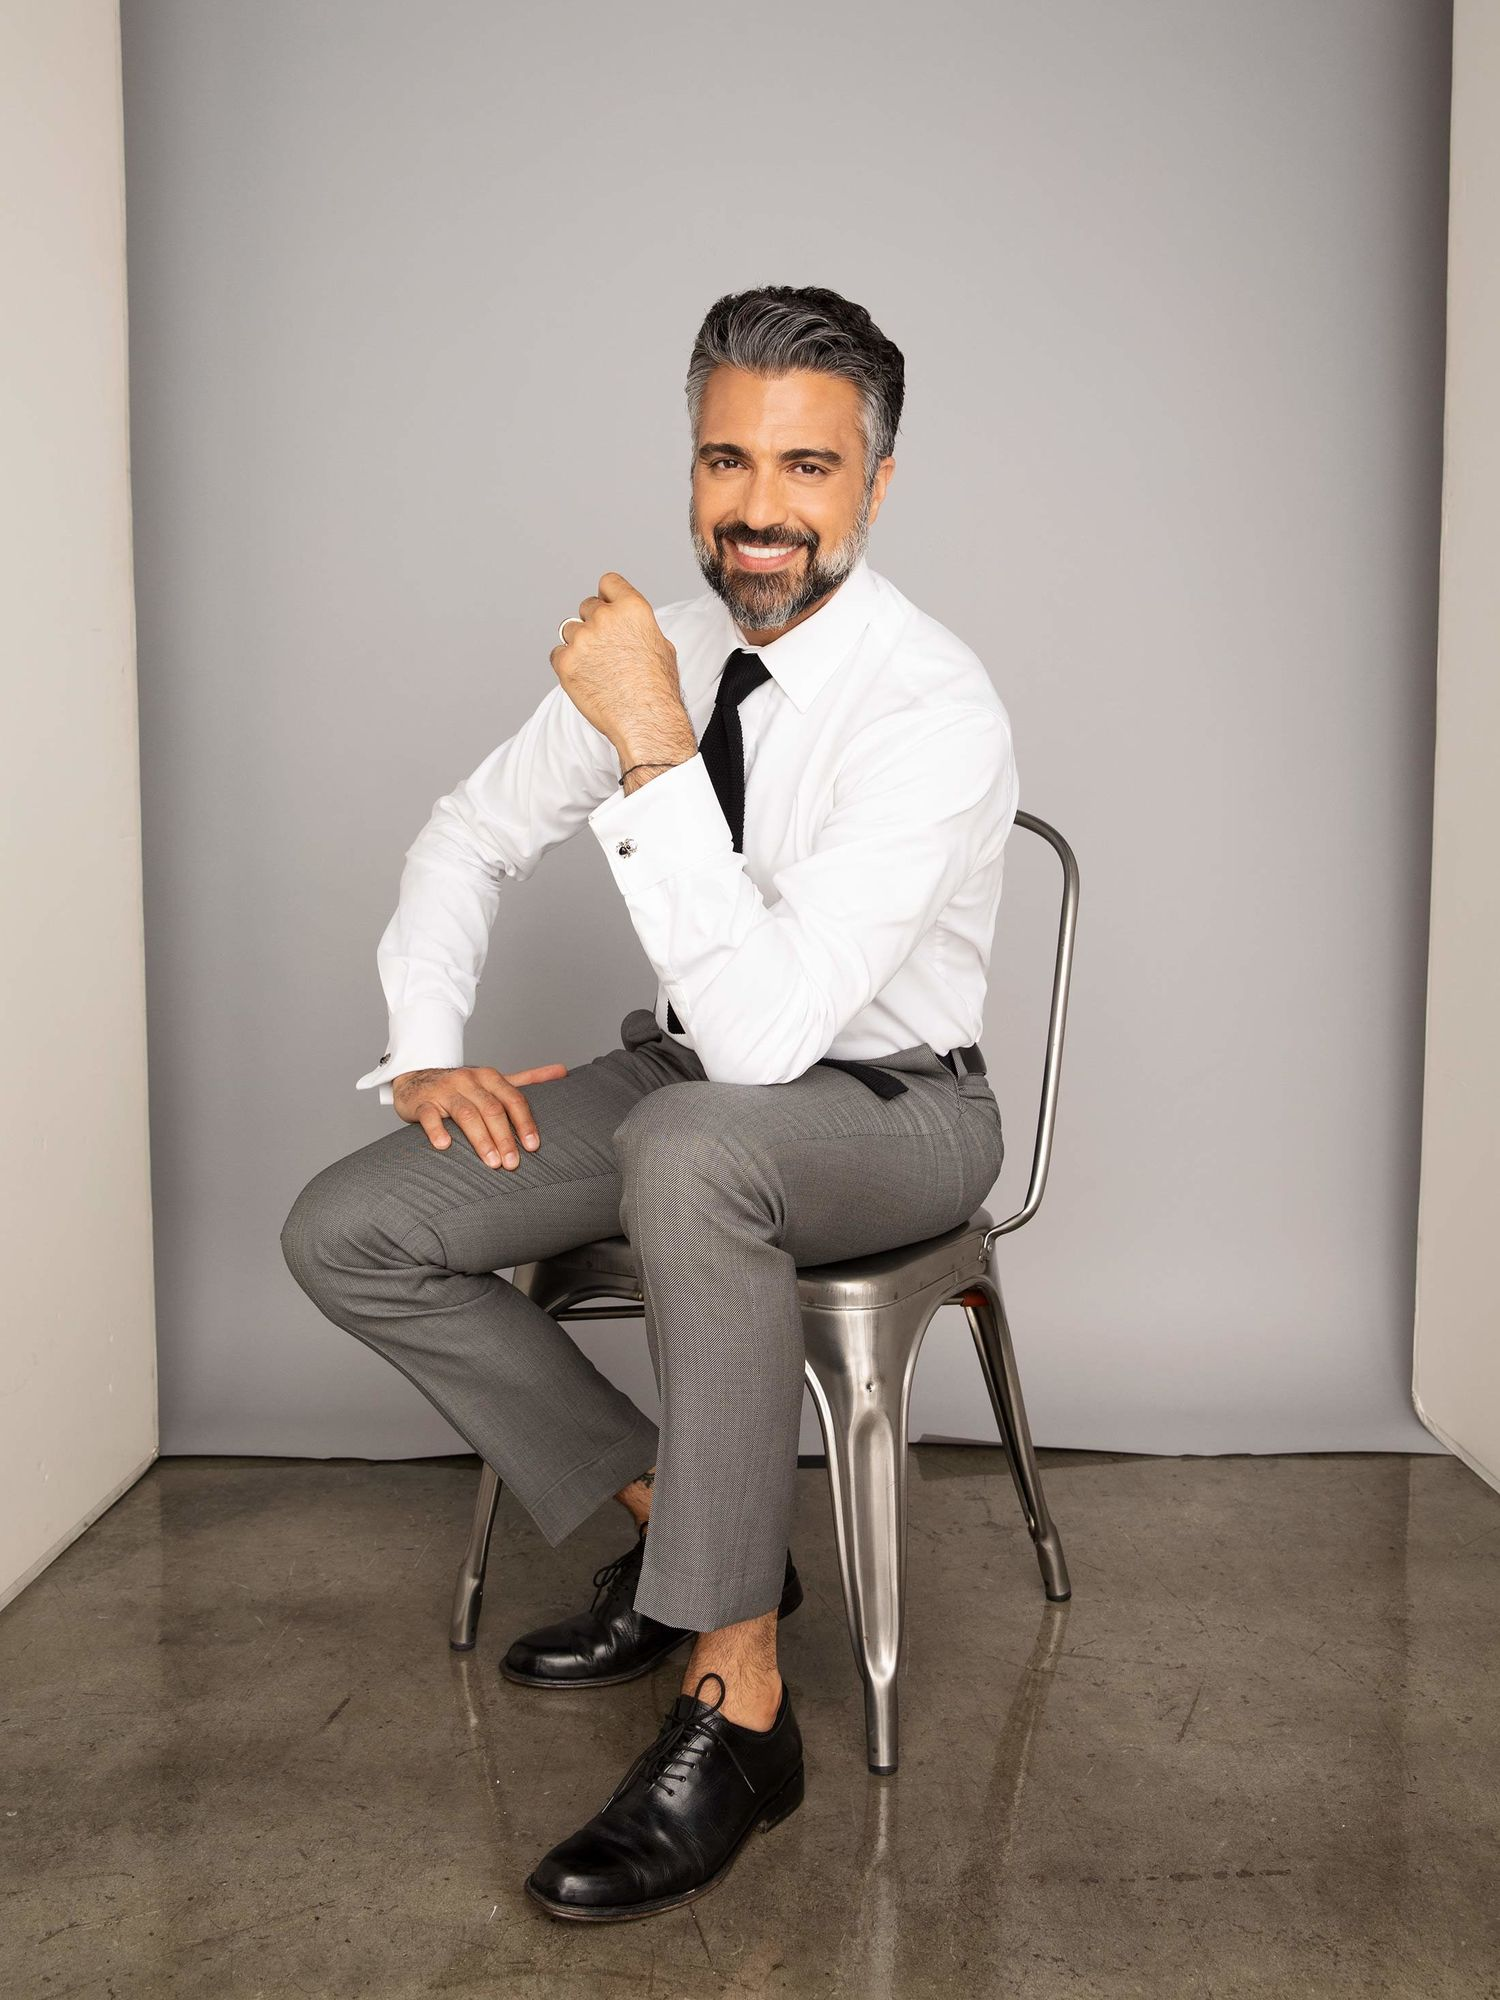 Actor Jaime Camil sitting on a sitting chair and smiling.